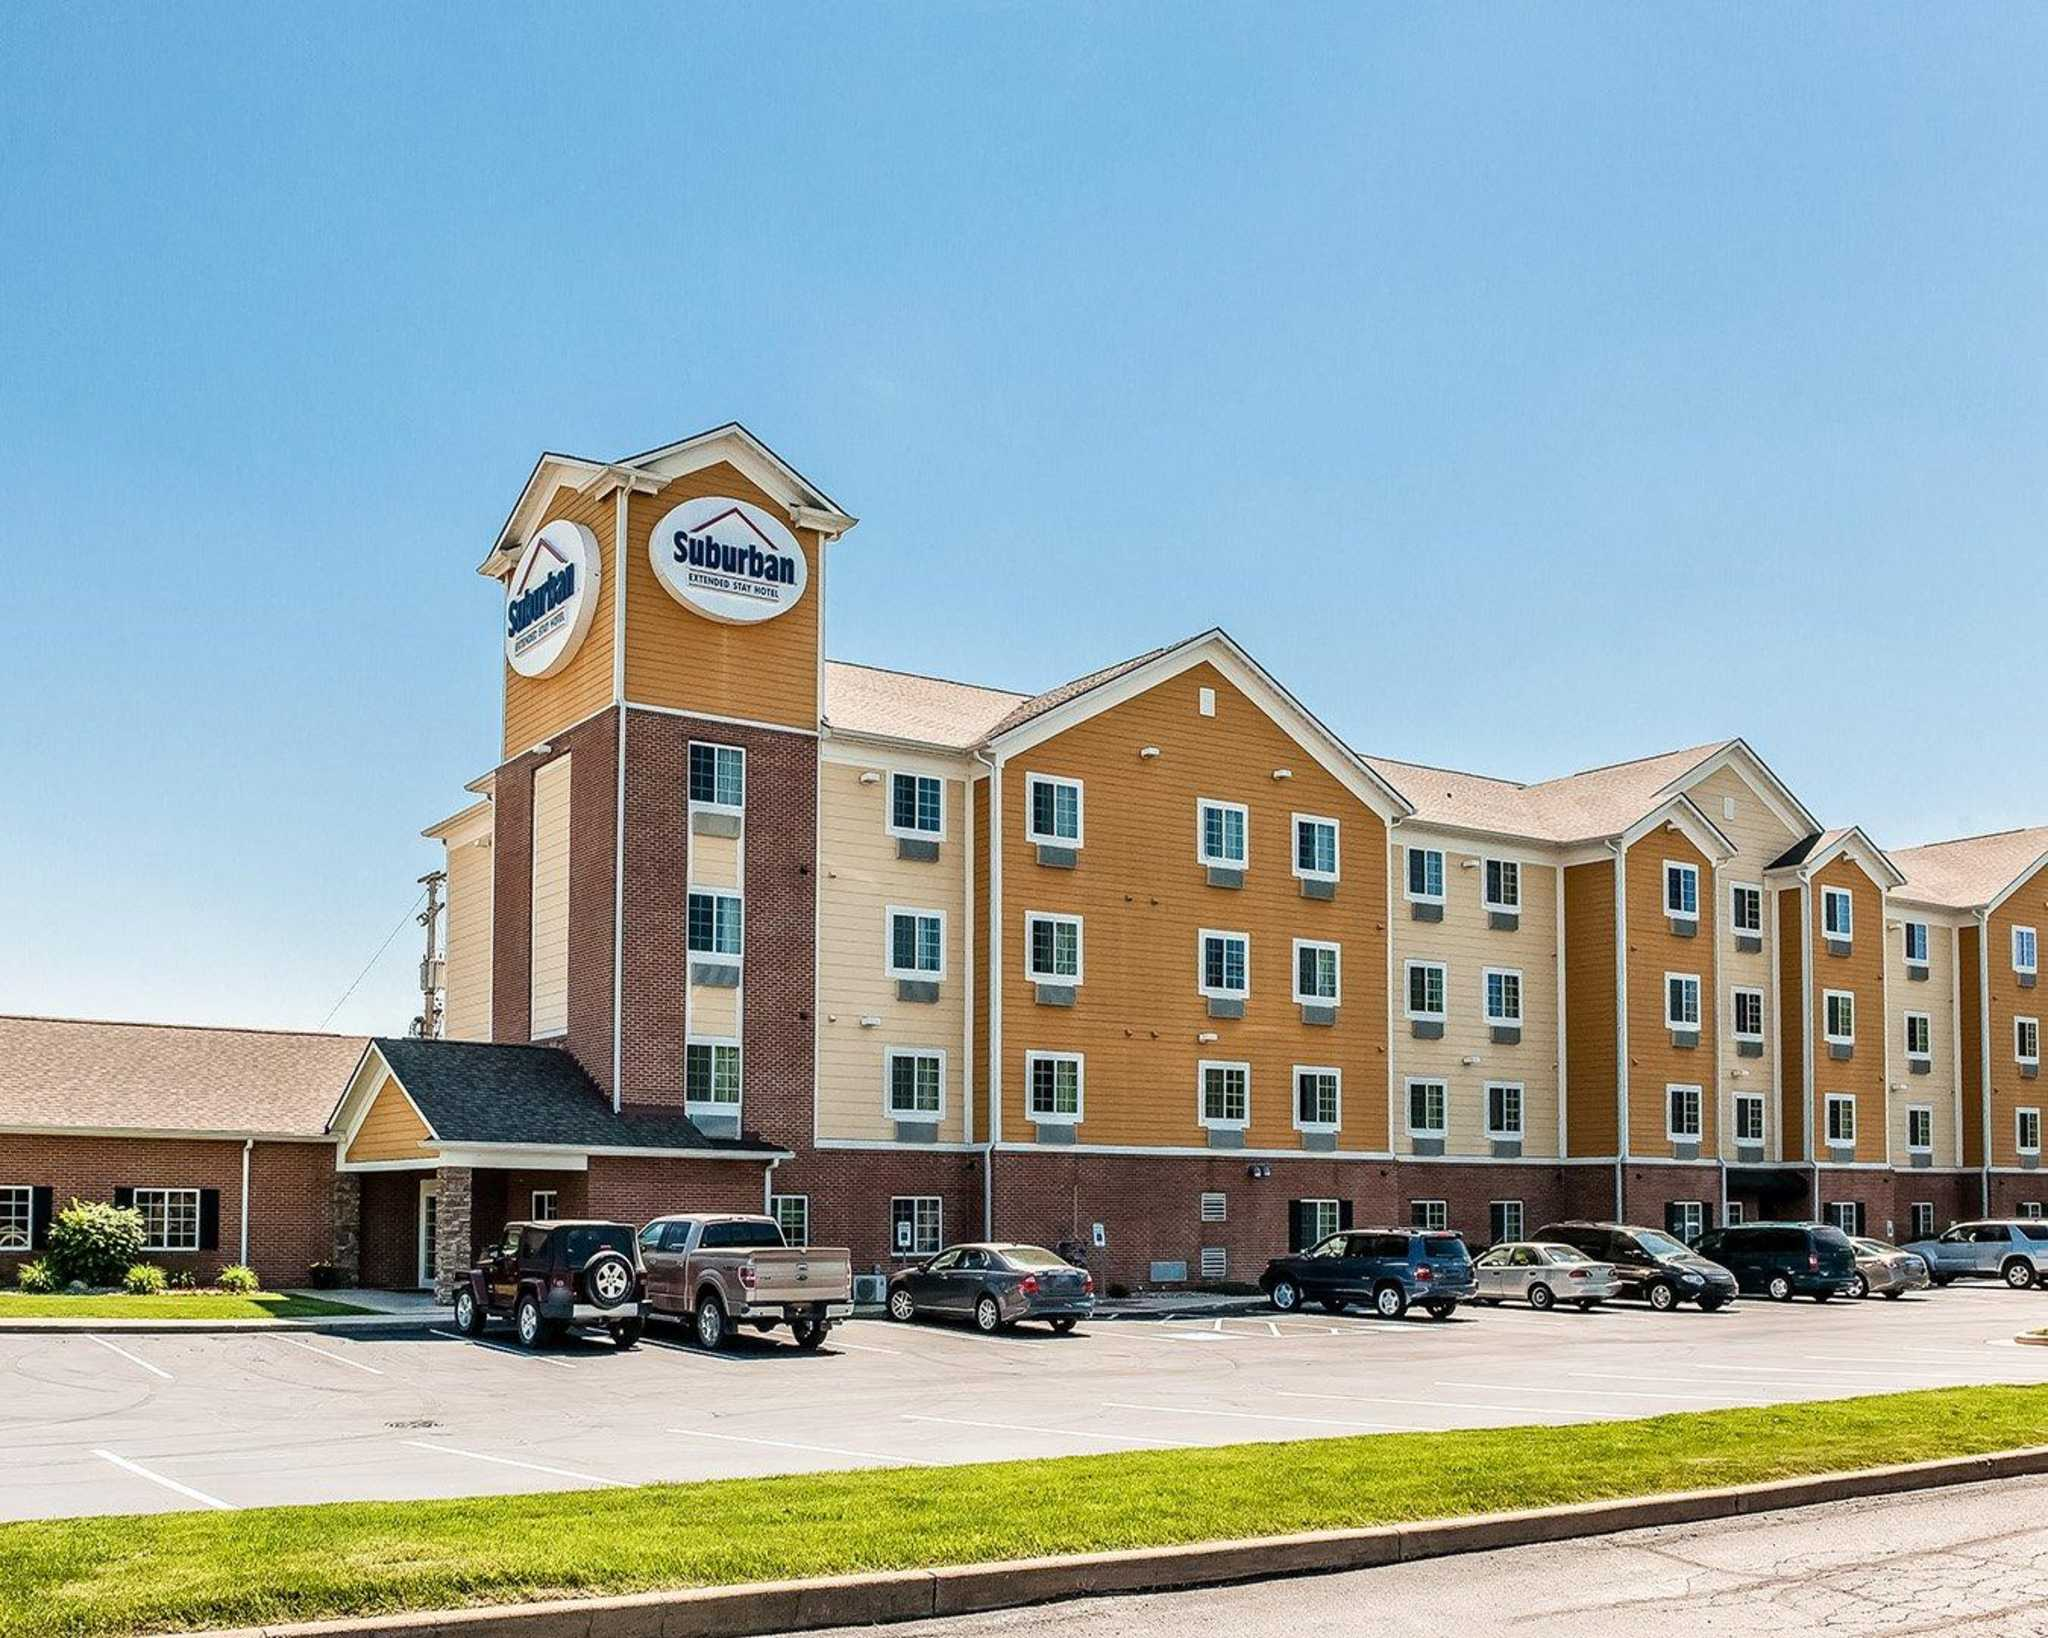 suburban extended stay hotel south bend indiana in. Black Bedroom Furniture Sets. Home Design Ideas